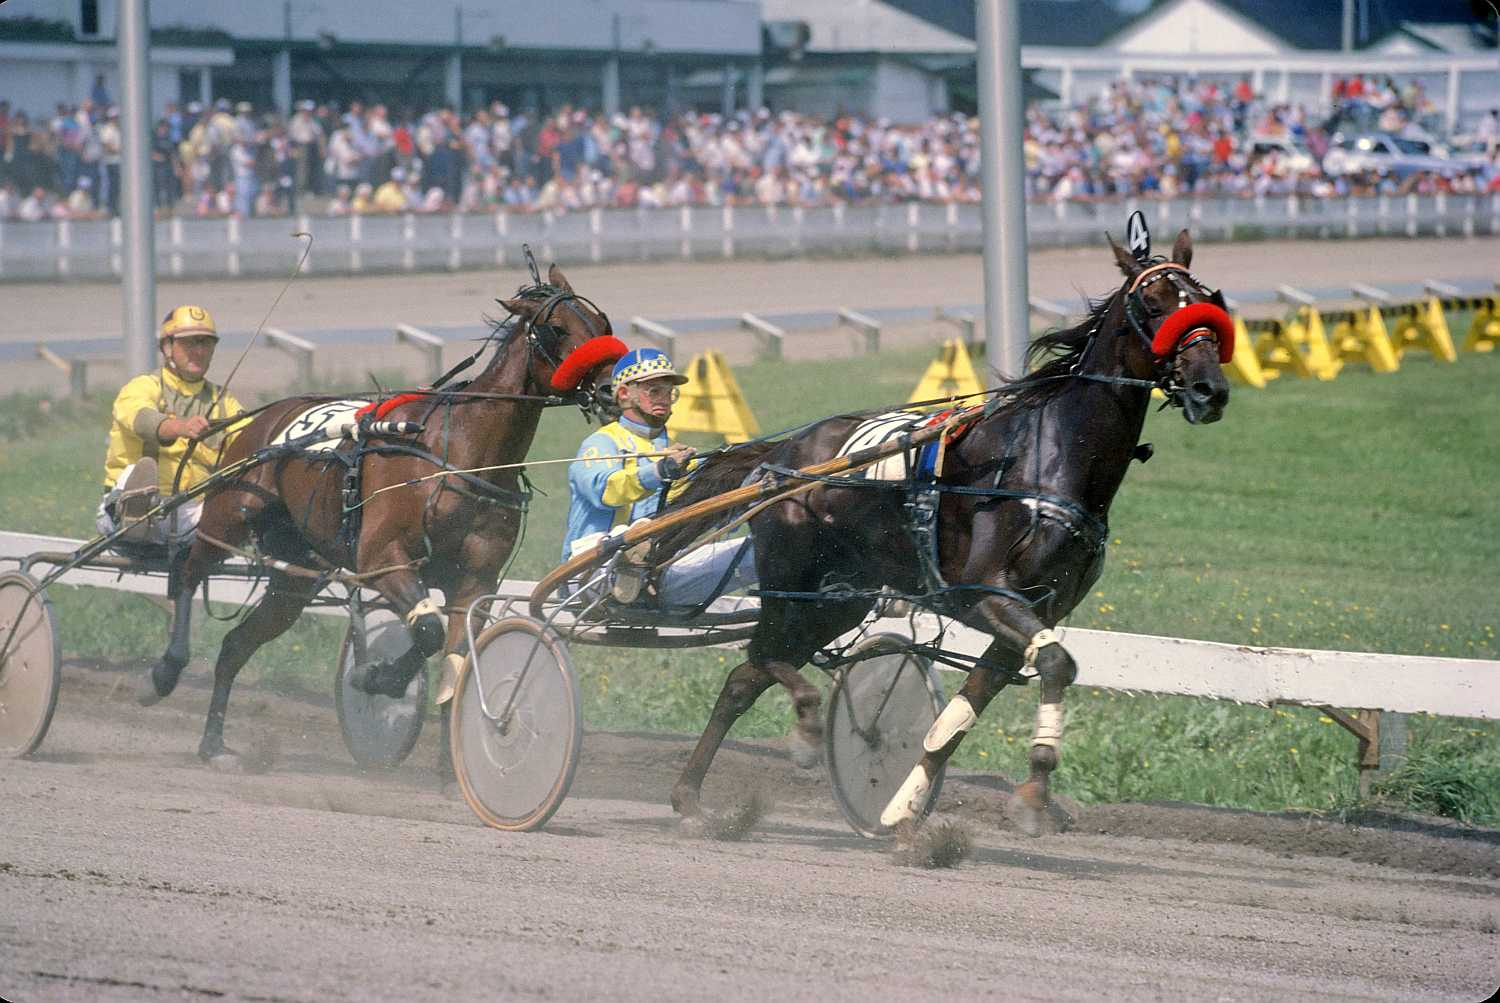 American standardbred horses racing on a track